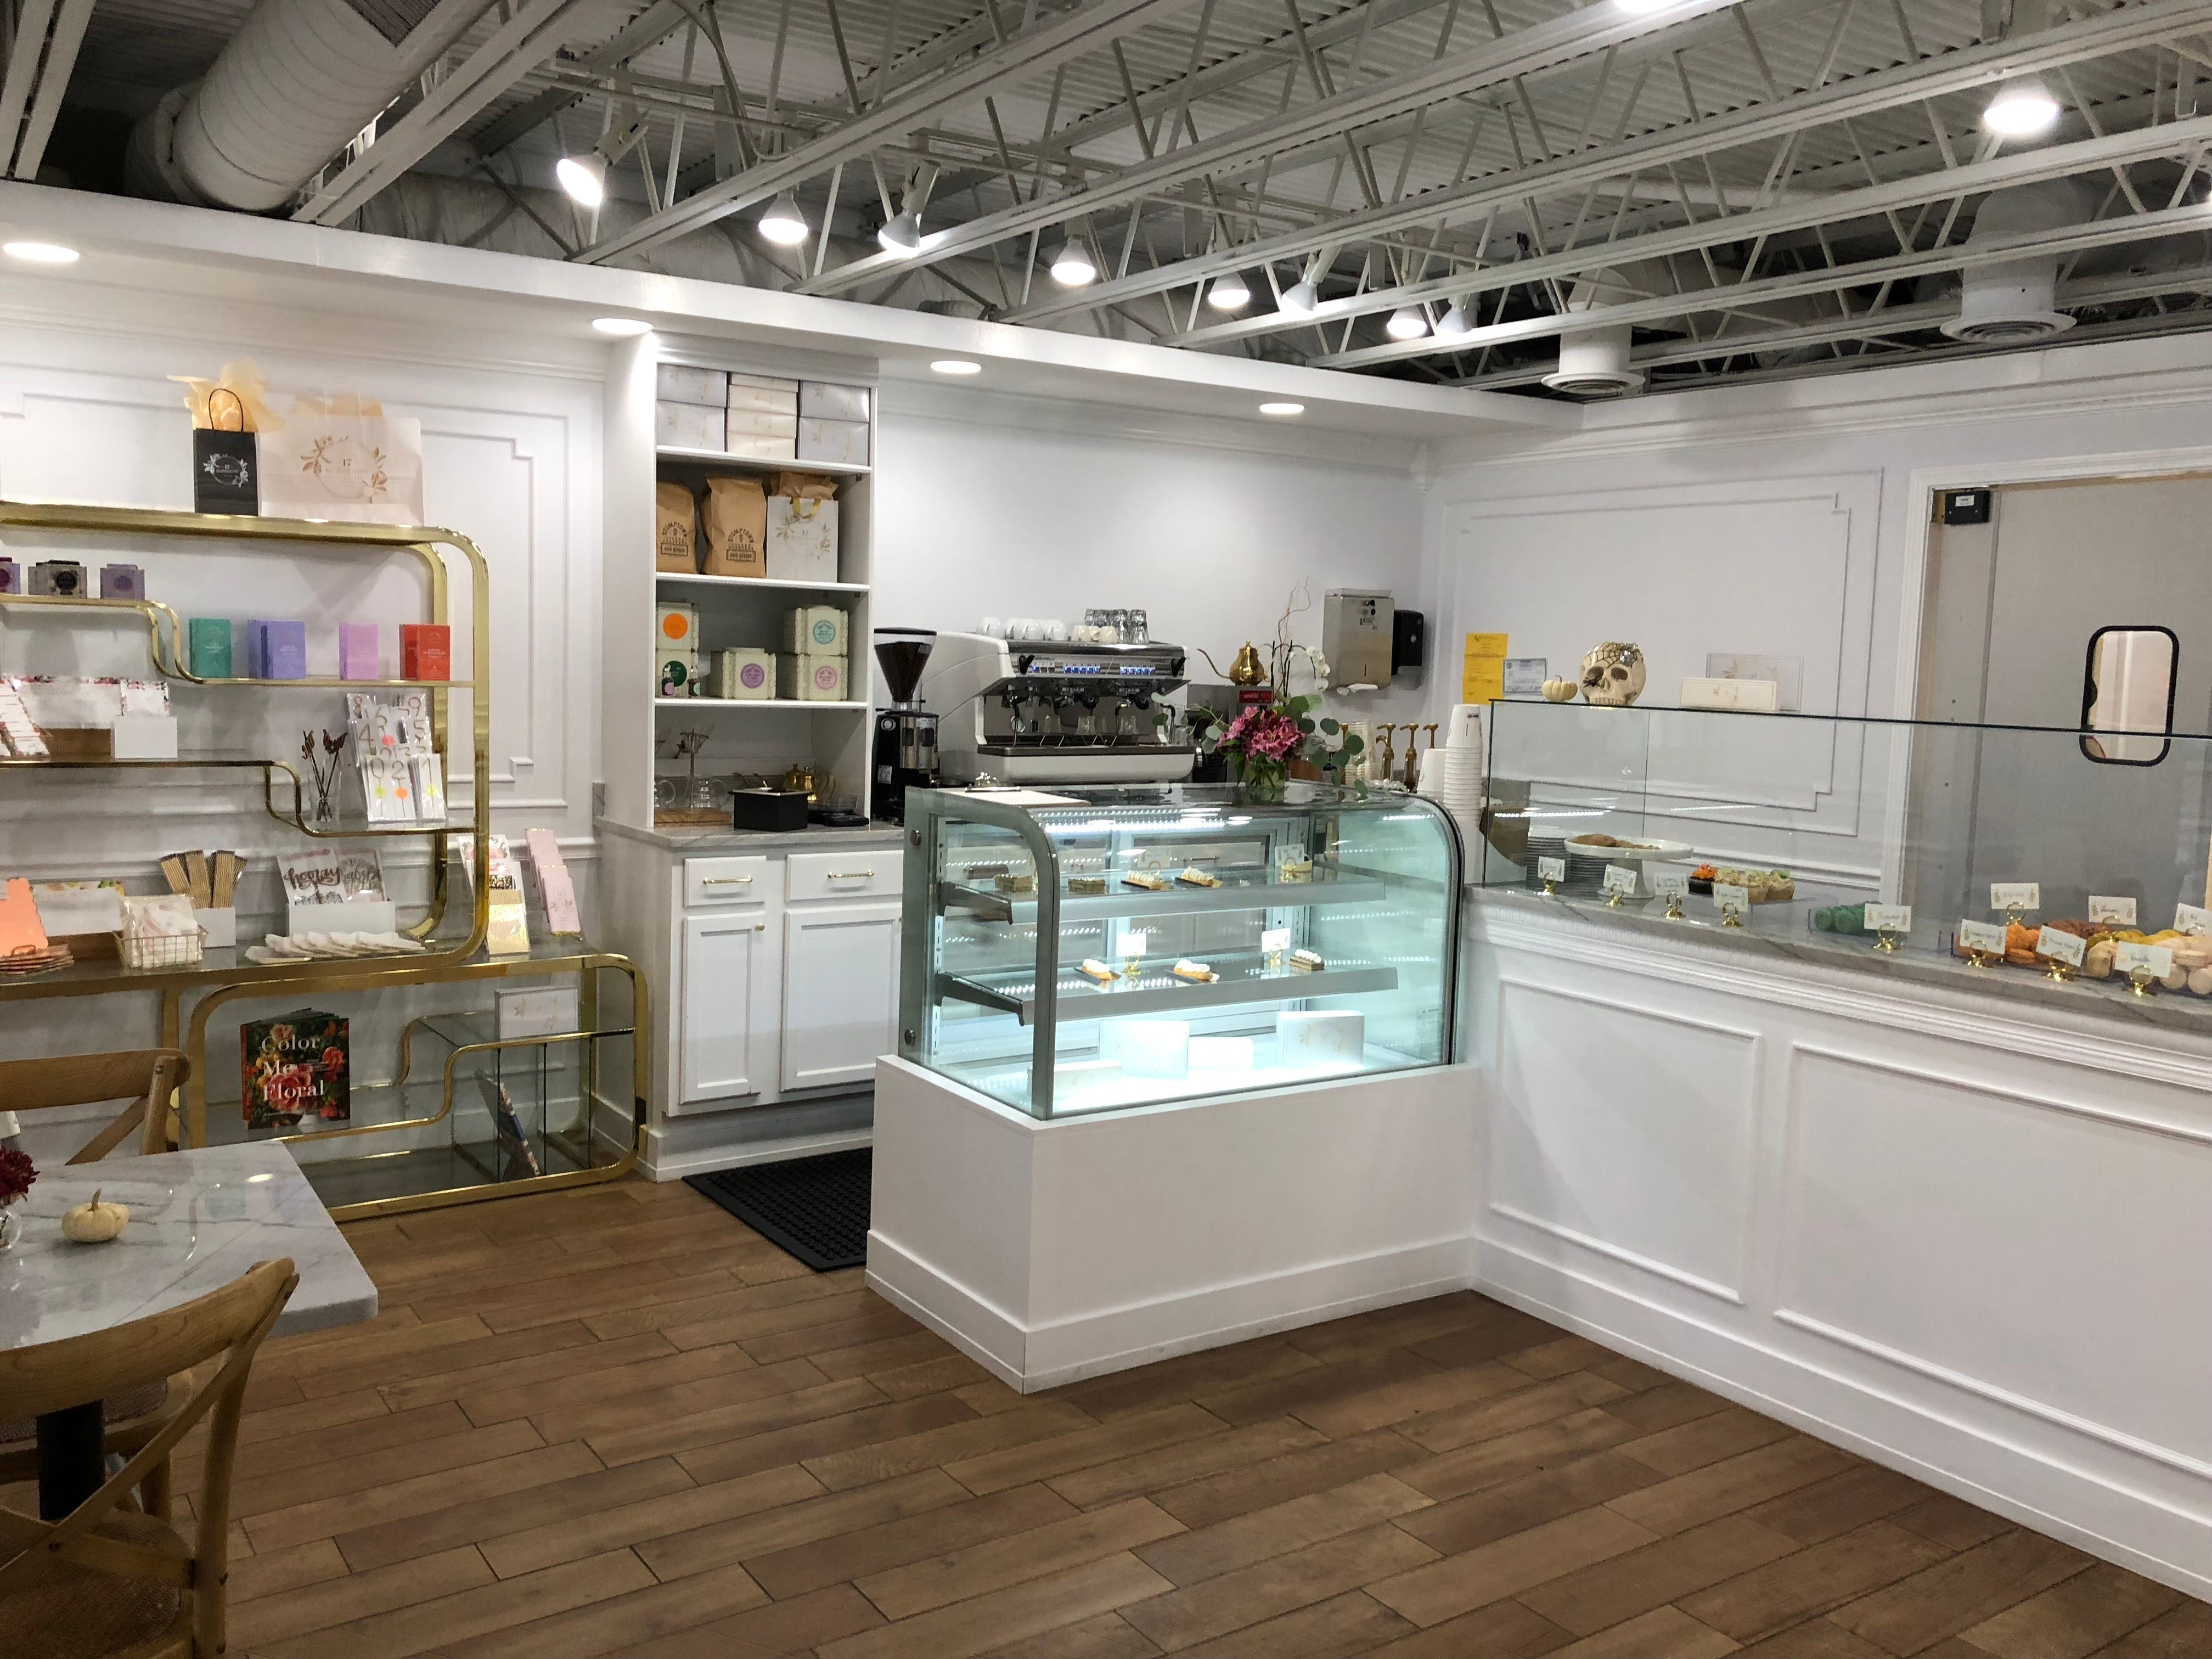 The inside of 17 Berkshire, a European-inspired bakery and coffee shop in Overton Square.